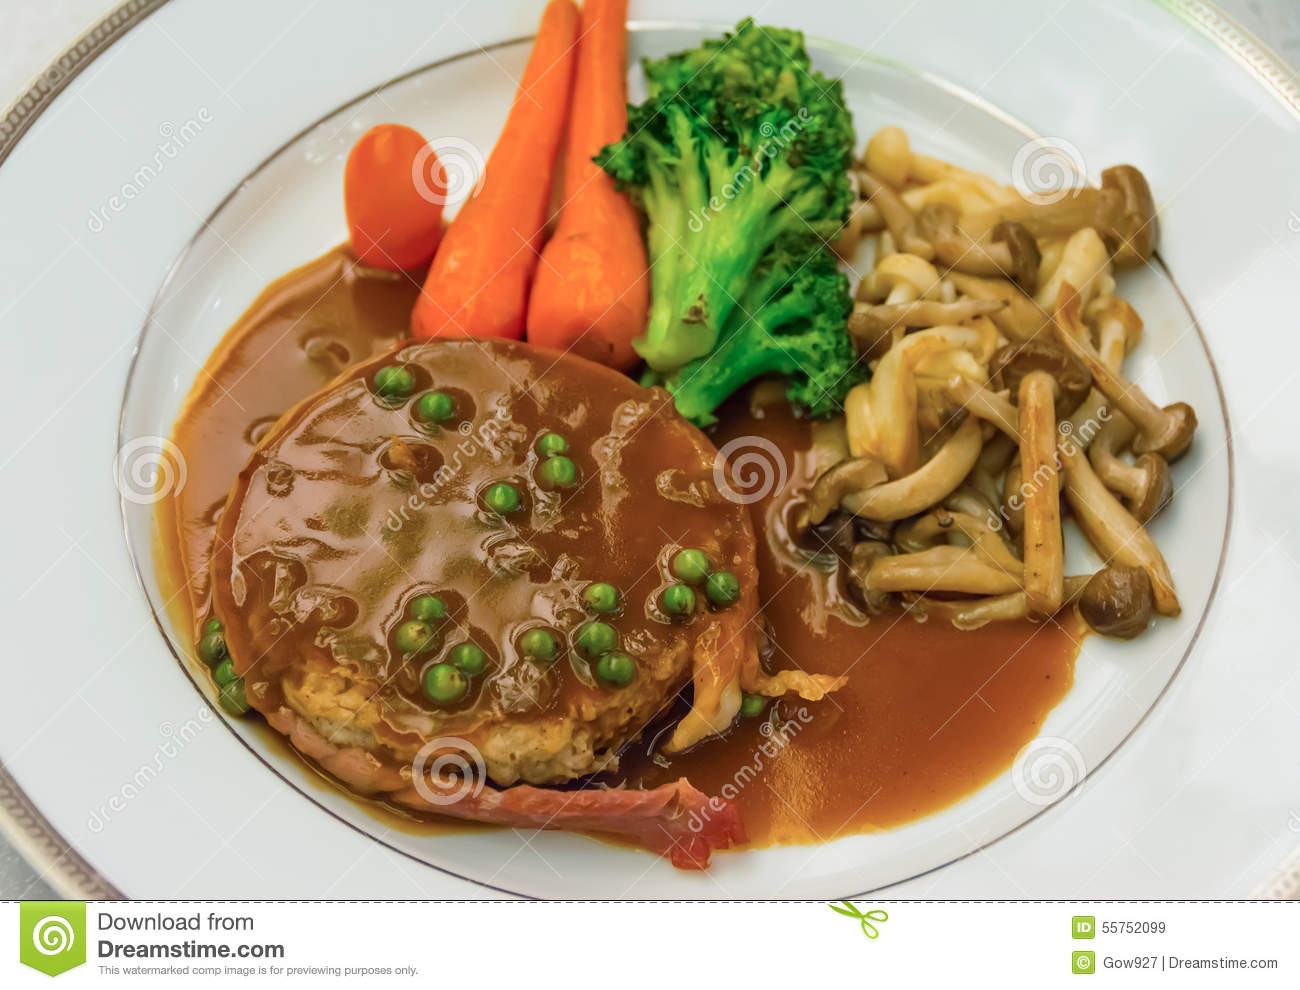 Filet Mignon Side Dishes  Filet Mignon Steak With Gravy Sauce And Carrot Broccoli